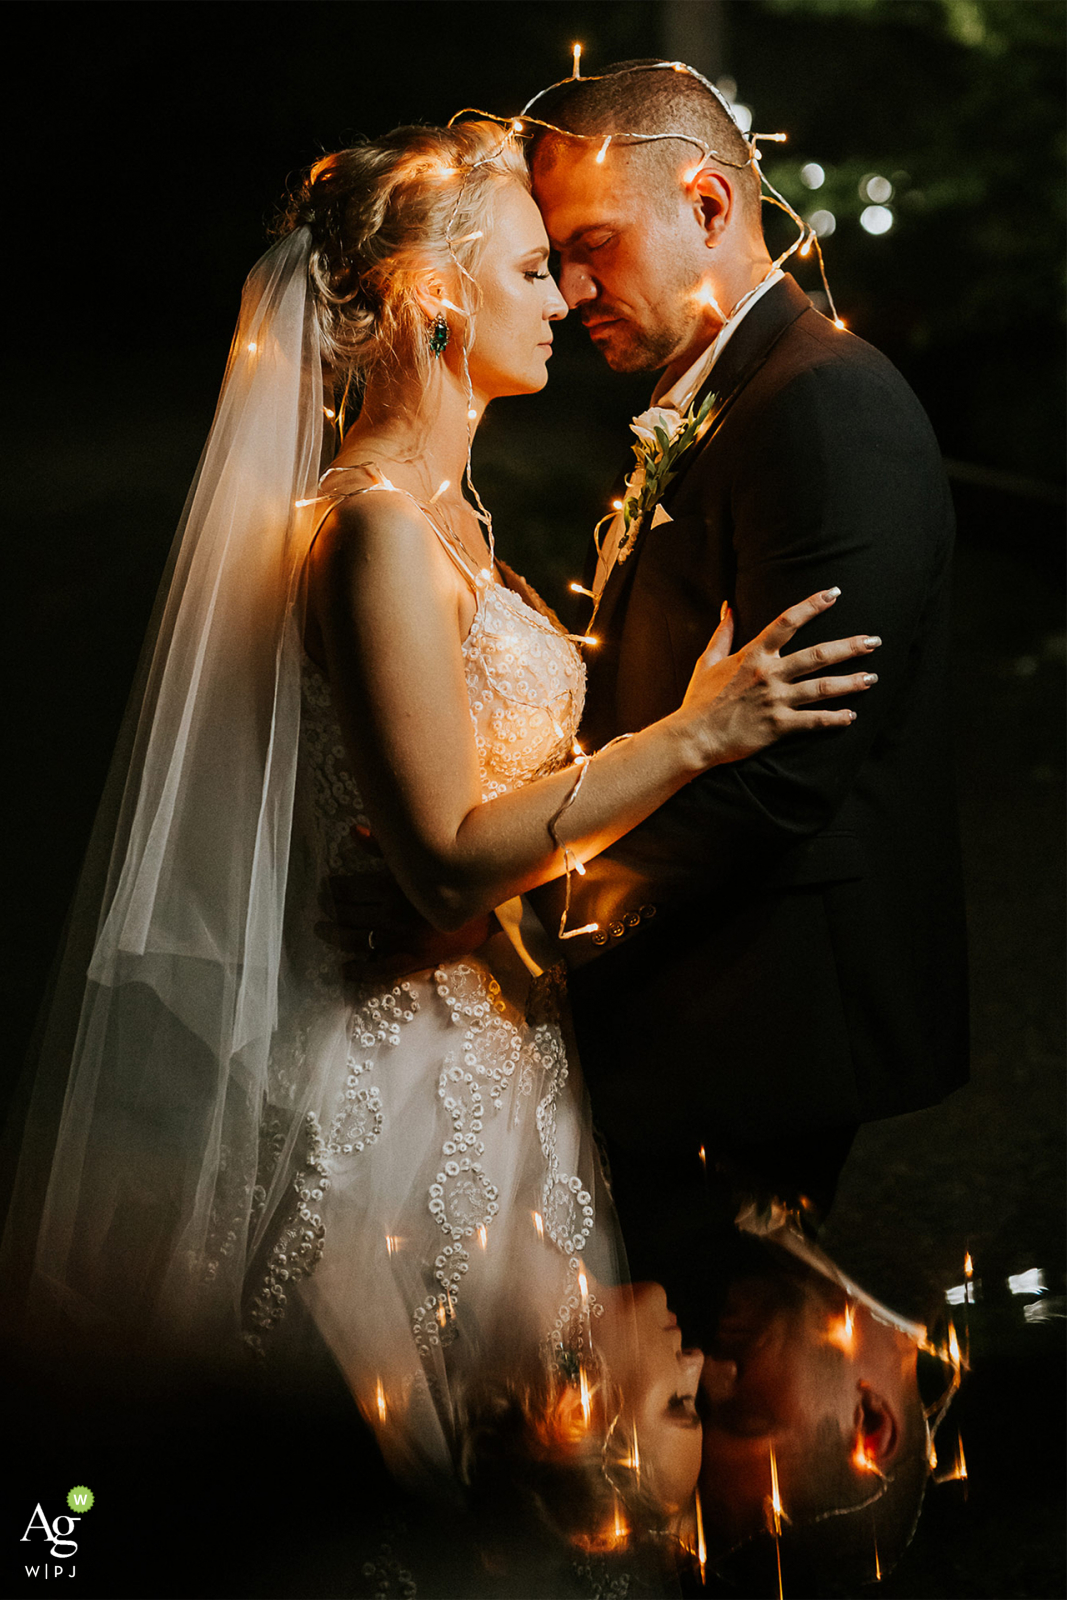 Banska Bystrica, Slovakia artistic wedding couple portrait of the Bride and Groom using tea lights and reflections